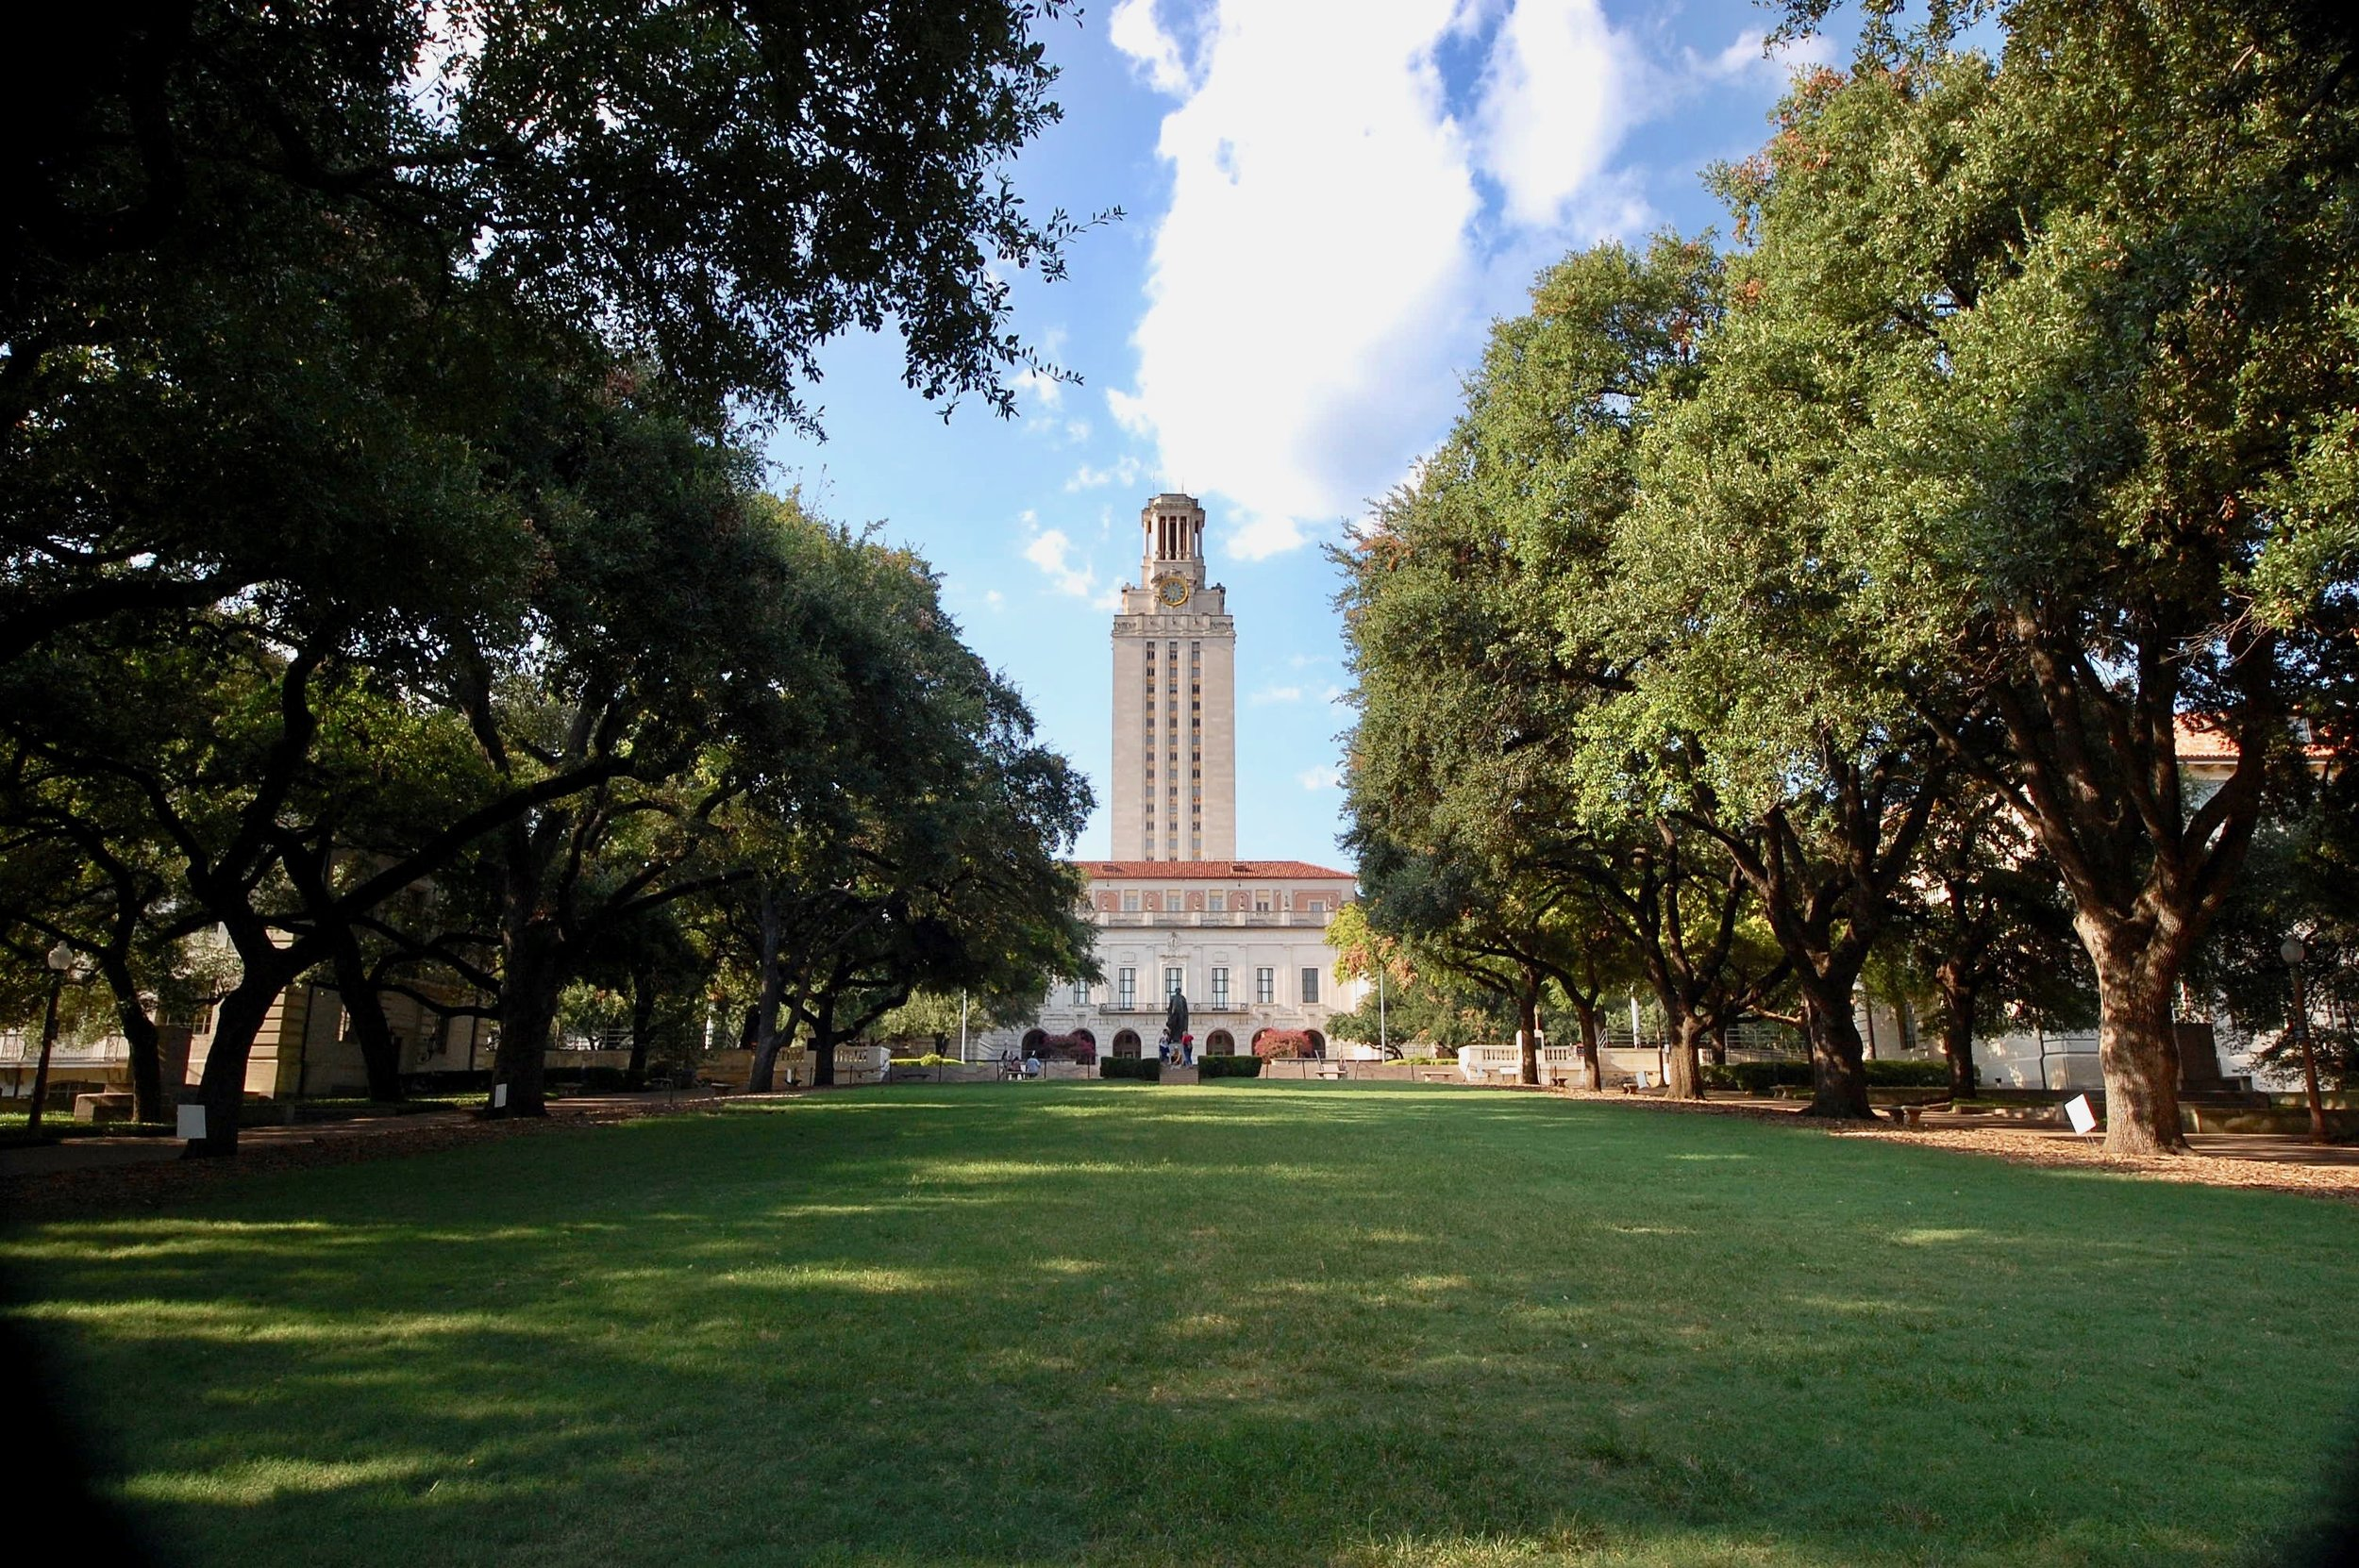 Figure 1. The University of Texas at Austin Main Tower Building as seen from the South Mall lawn, 2019. The tower was designed by Paul Cret and completed in 1937. In 1966 it was the site of one of the first major campus shootings in the United States. Photograph Willa Granger.